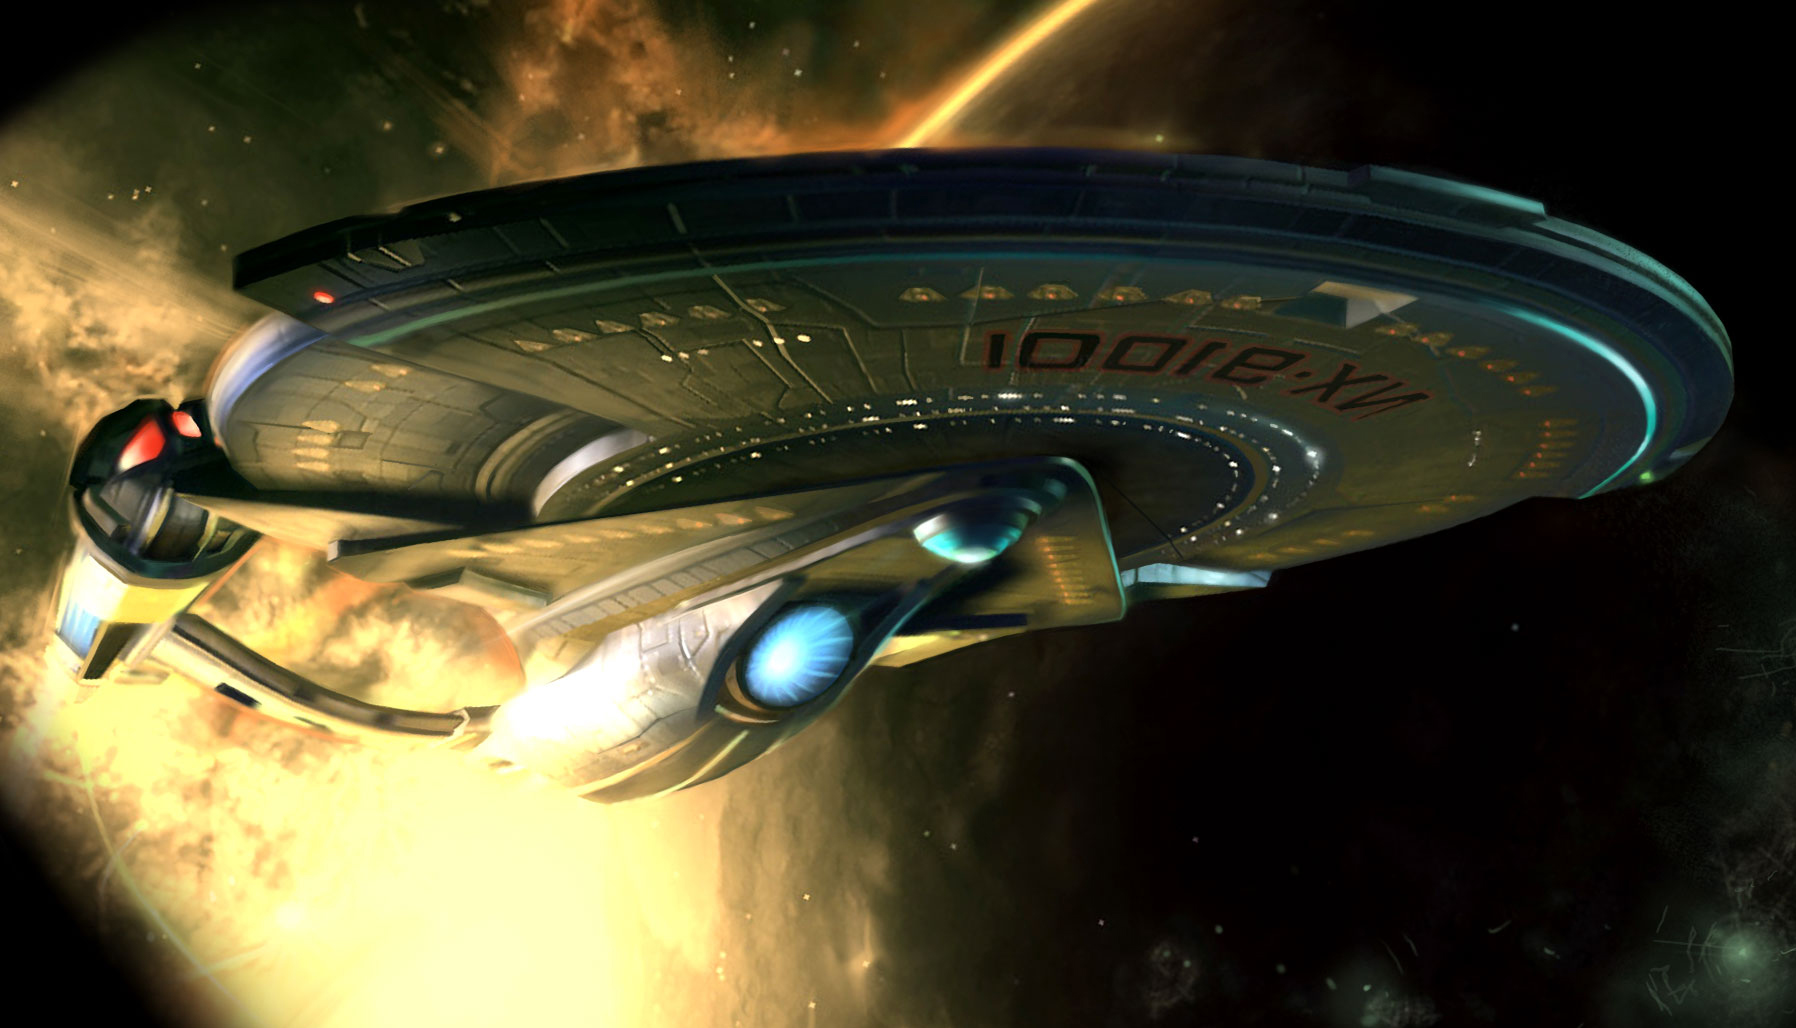 ... on November 9, 2015 By admin Comments Off on Star Trek HD Wallpapers